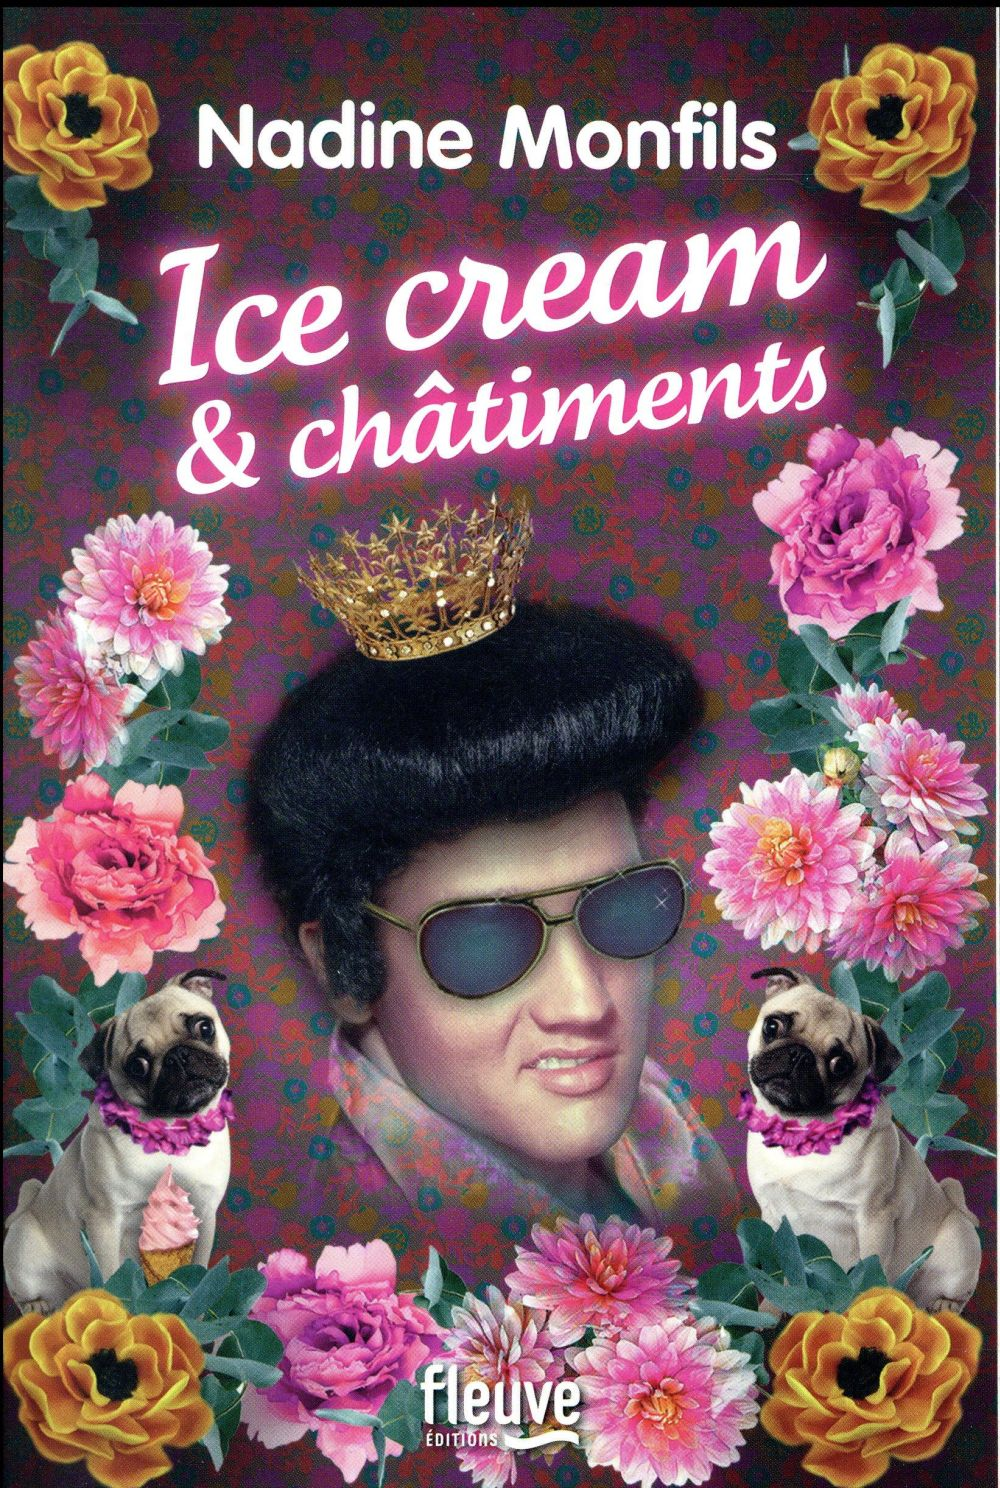 ICE CREAM & CHATIMENTS